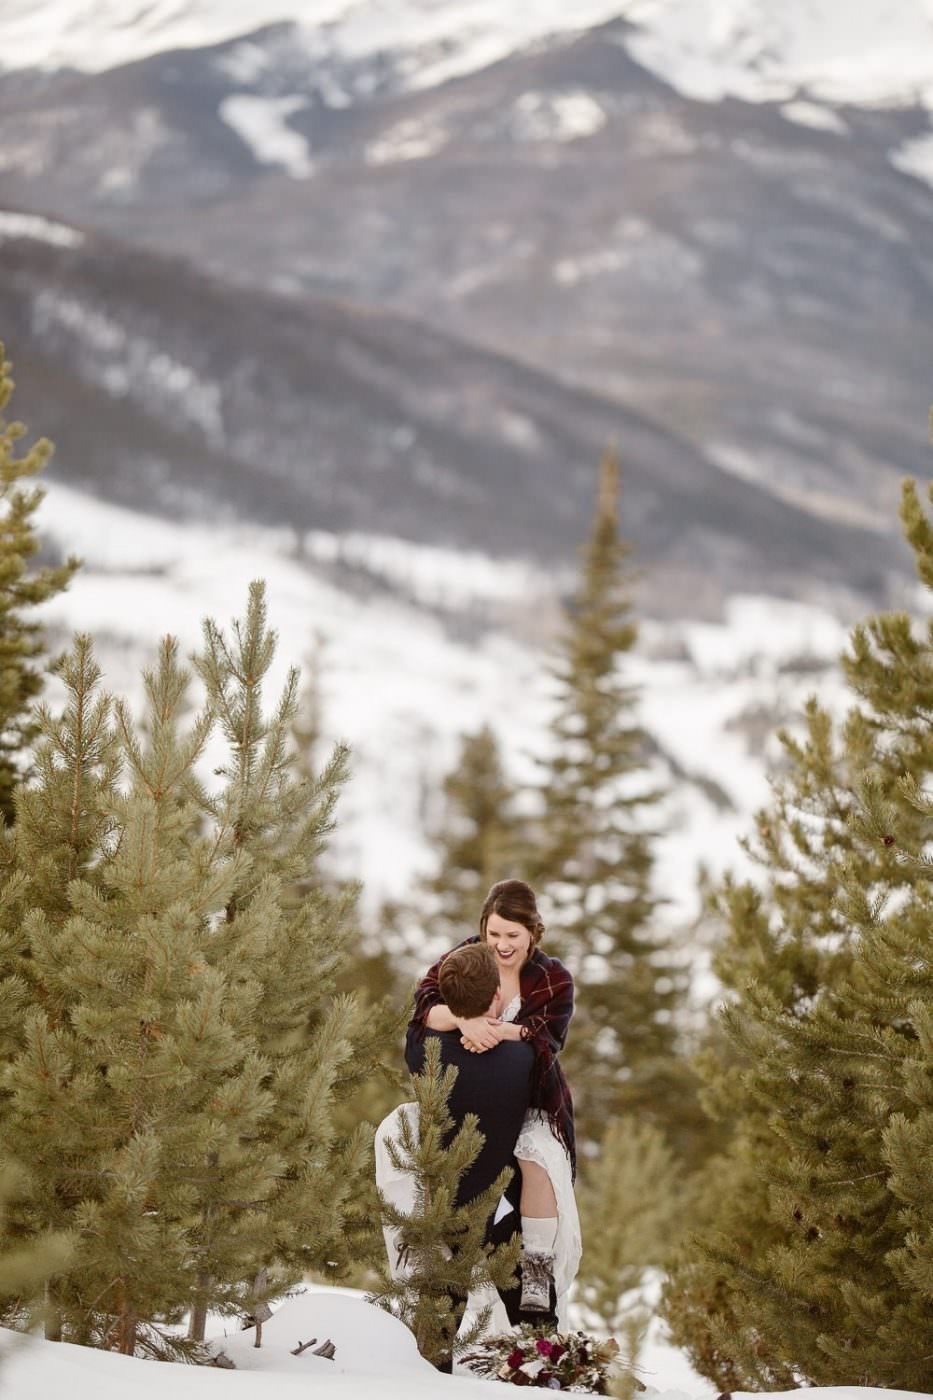 Rocky Mountain Elopement |Colorado Adventure Elopement Photographer|Destination Adventure Weddings | Justyna E Butler Photography